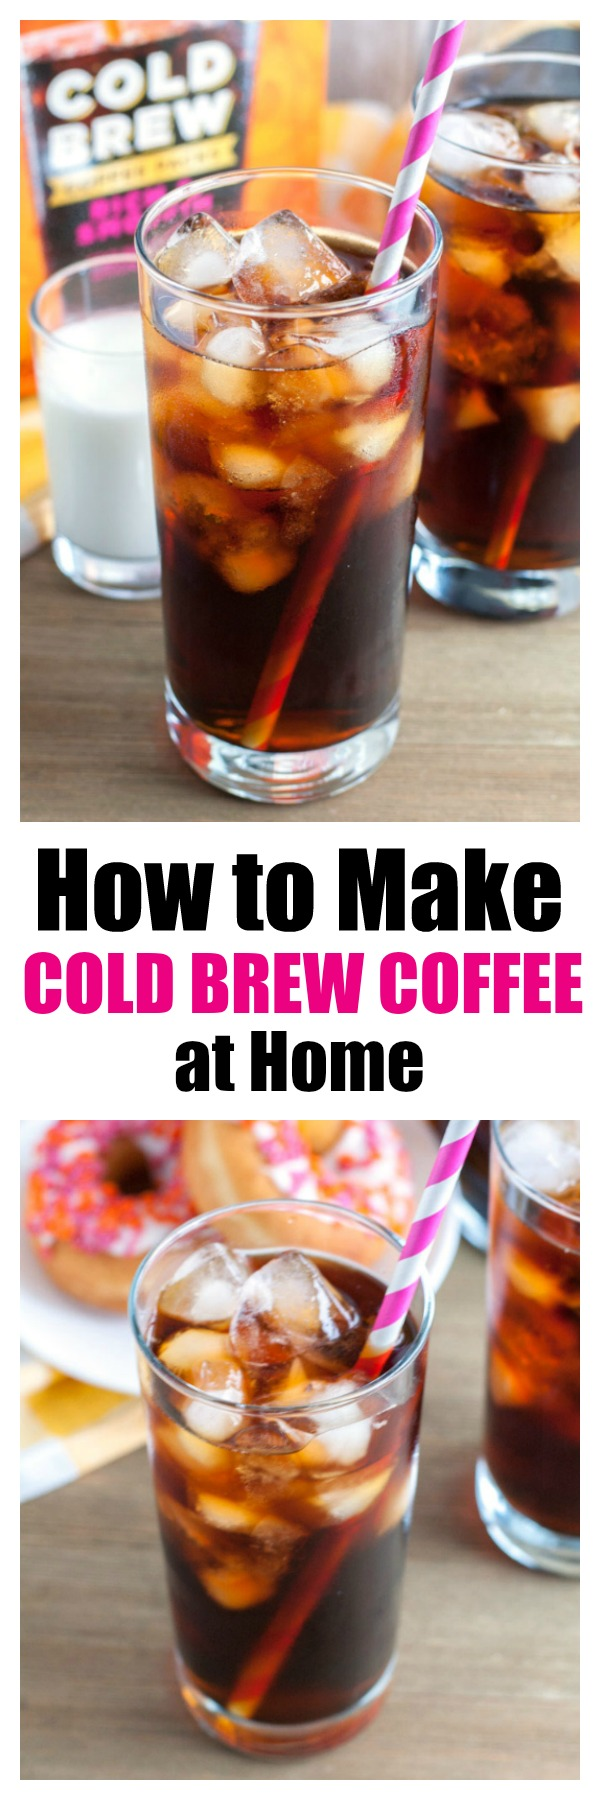 Making cold brew coffee at home is as easy as 1-2-3 with Dunkin' Donuts Cold Brew Coffee Packs. #ad #DunkinYouBrewYou @walmart #coldbrewcoffee #coffee